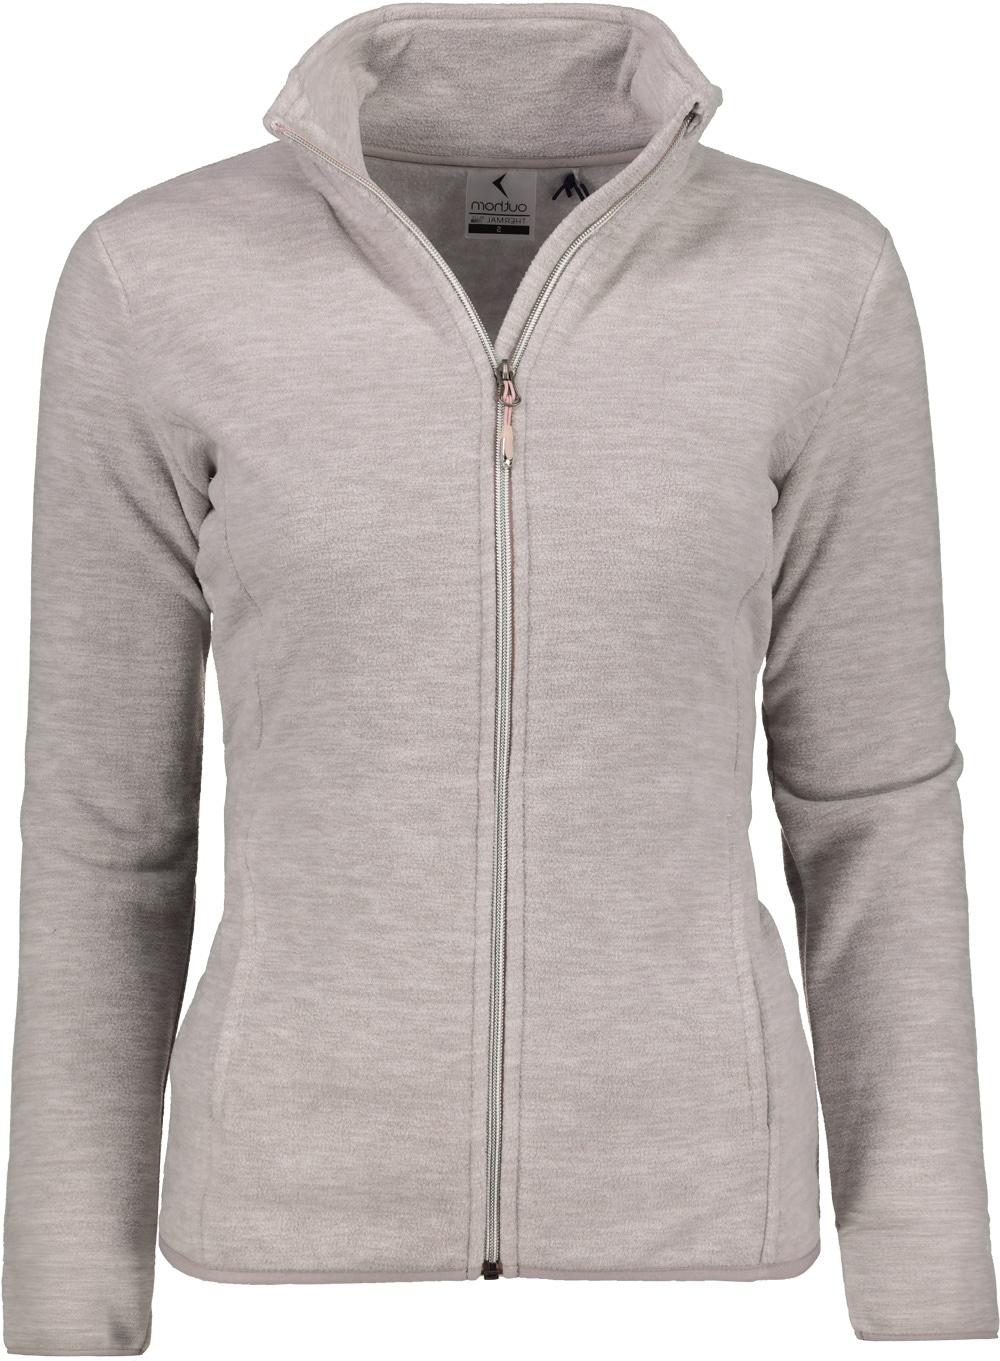 Women's fleece sweatshirt OUTHORN PLD600 HOL19